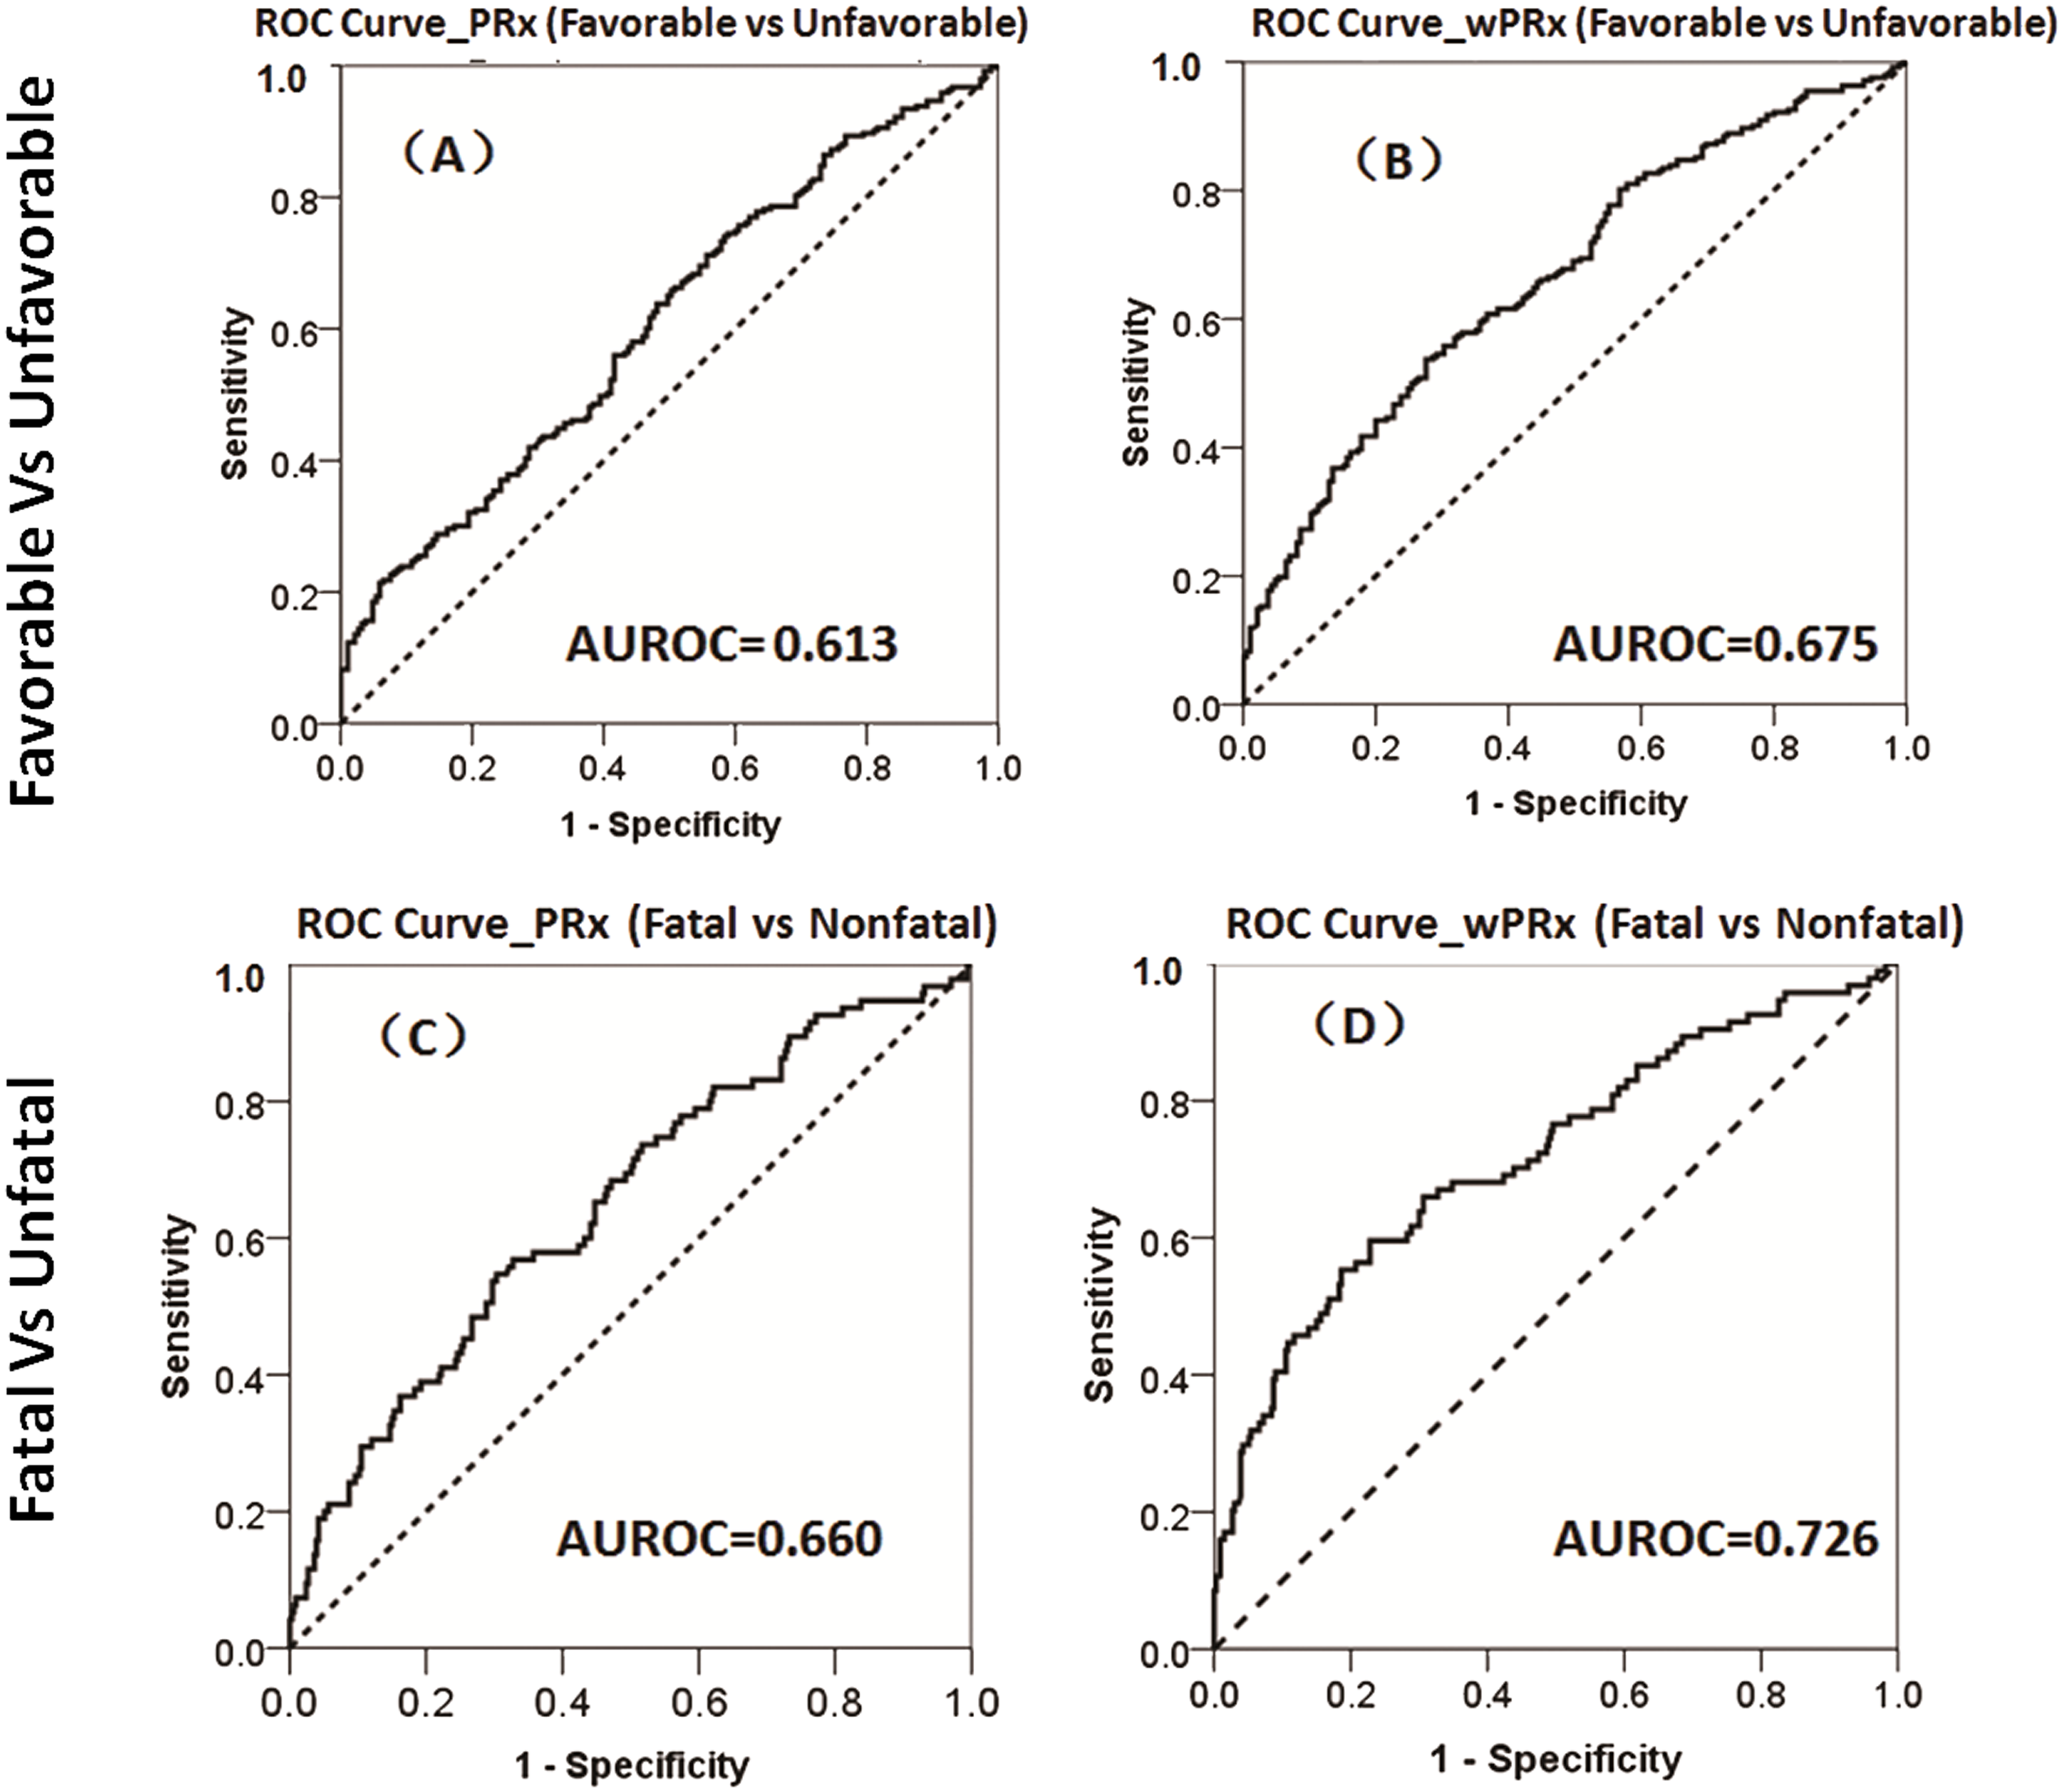 The ability of pressure reactivity index (PRx) and wavelet pressure reactivity index (wPRx) in distinguishing different patient outcome demonstrated by receiver operating characteristic (ROC) curve.